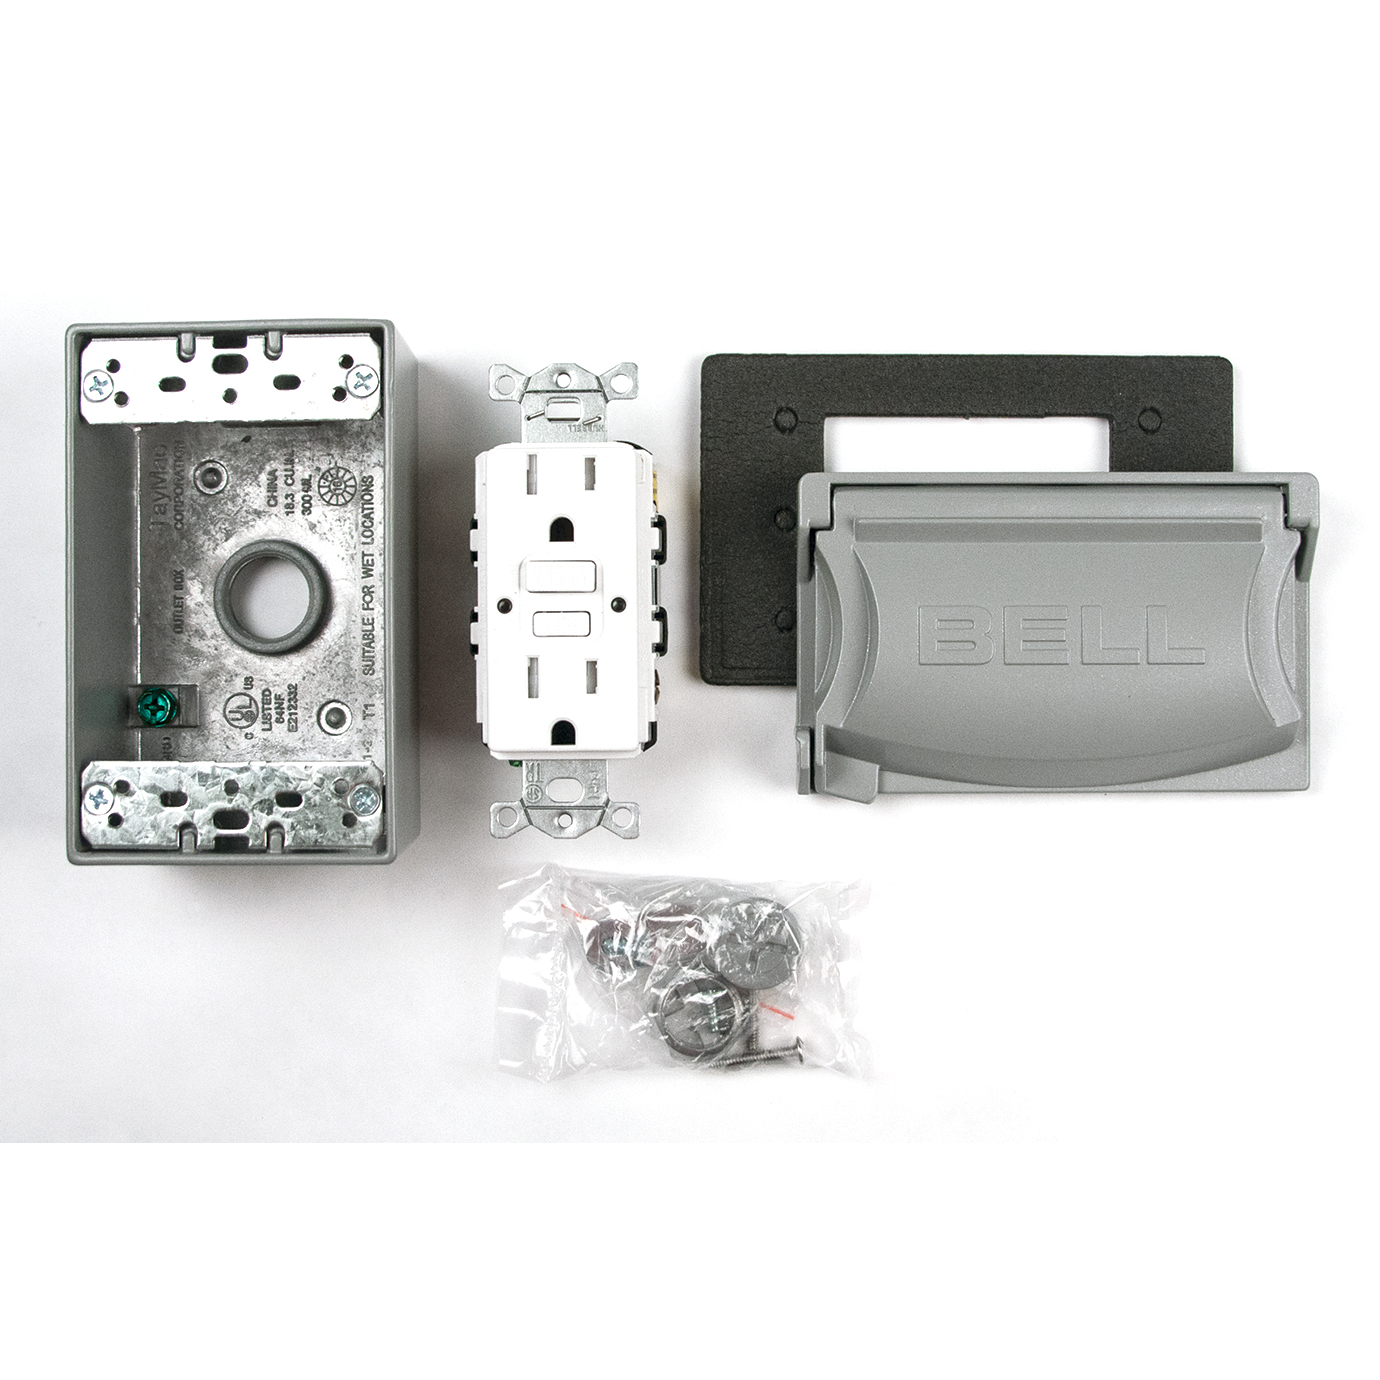 Bell Outdoor 5874-5S 15A 120V Gray Weatherproof GFCI Outdoor Outlet Kit